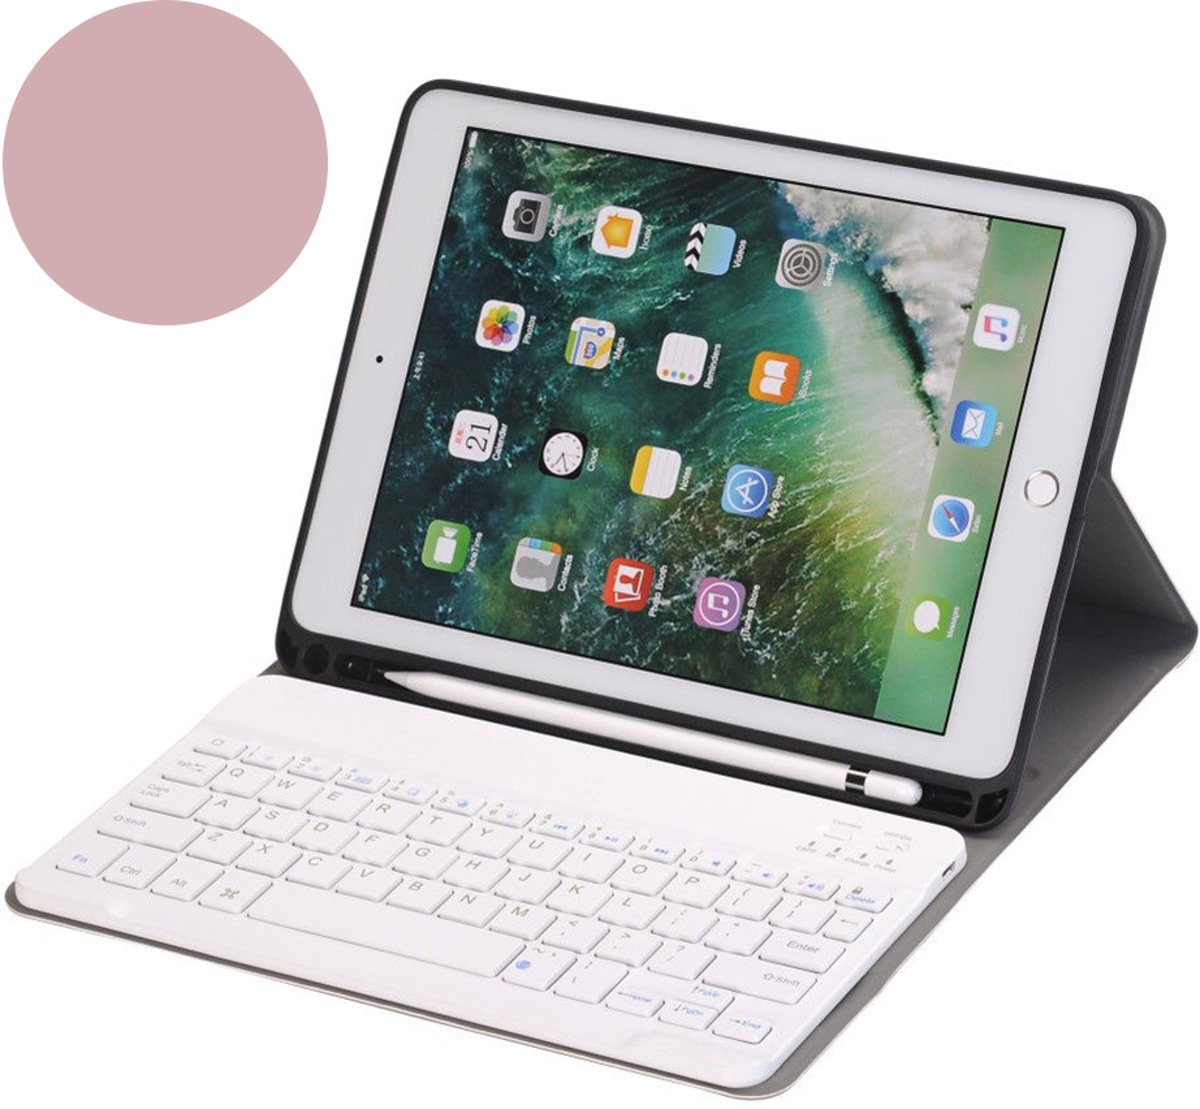 Shop4 - iPad 9.7 (2018) Toetsenbord Hoes - Bluetooth Keyboard Cover Business Rosé Goud met Pencil Houder kopen